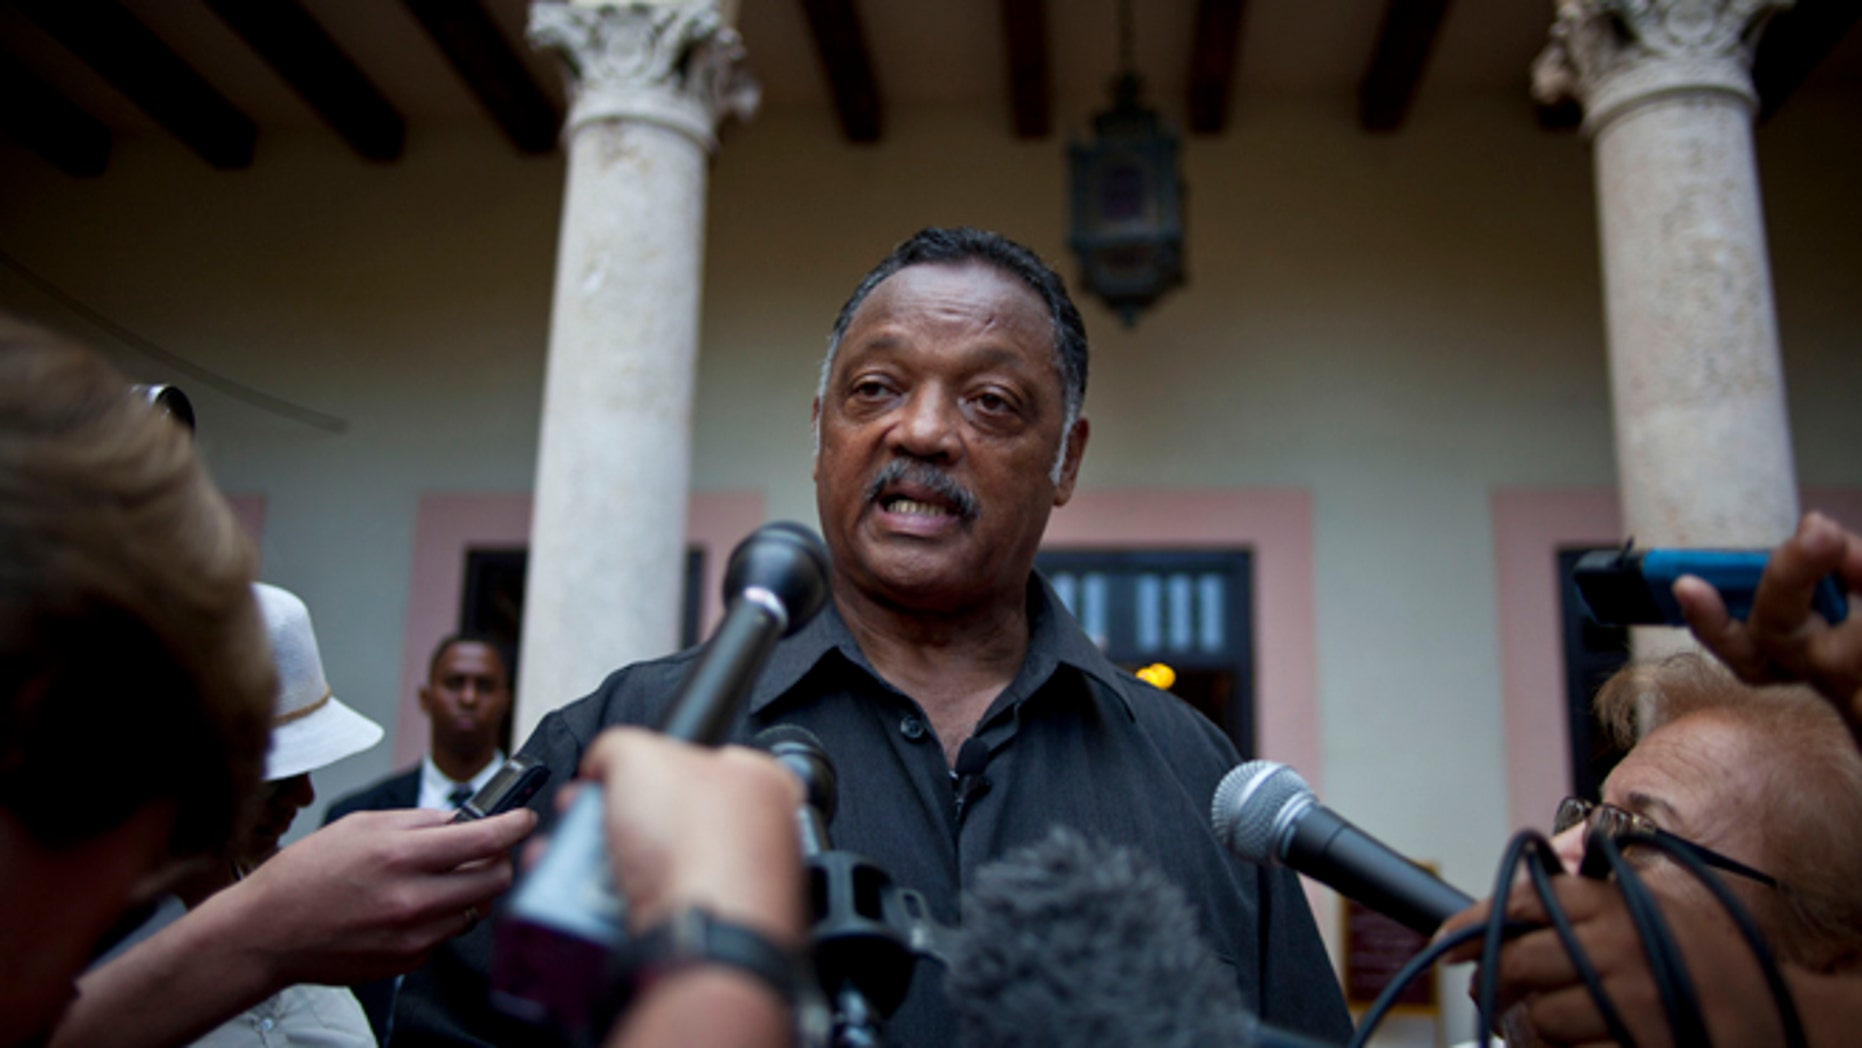 The Rev. Jesse Jackson talks with journalists in 2013.